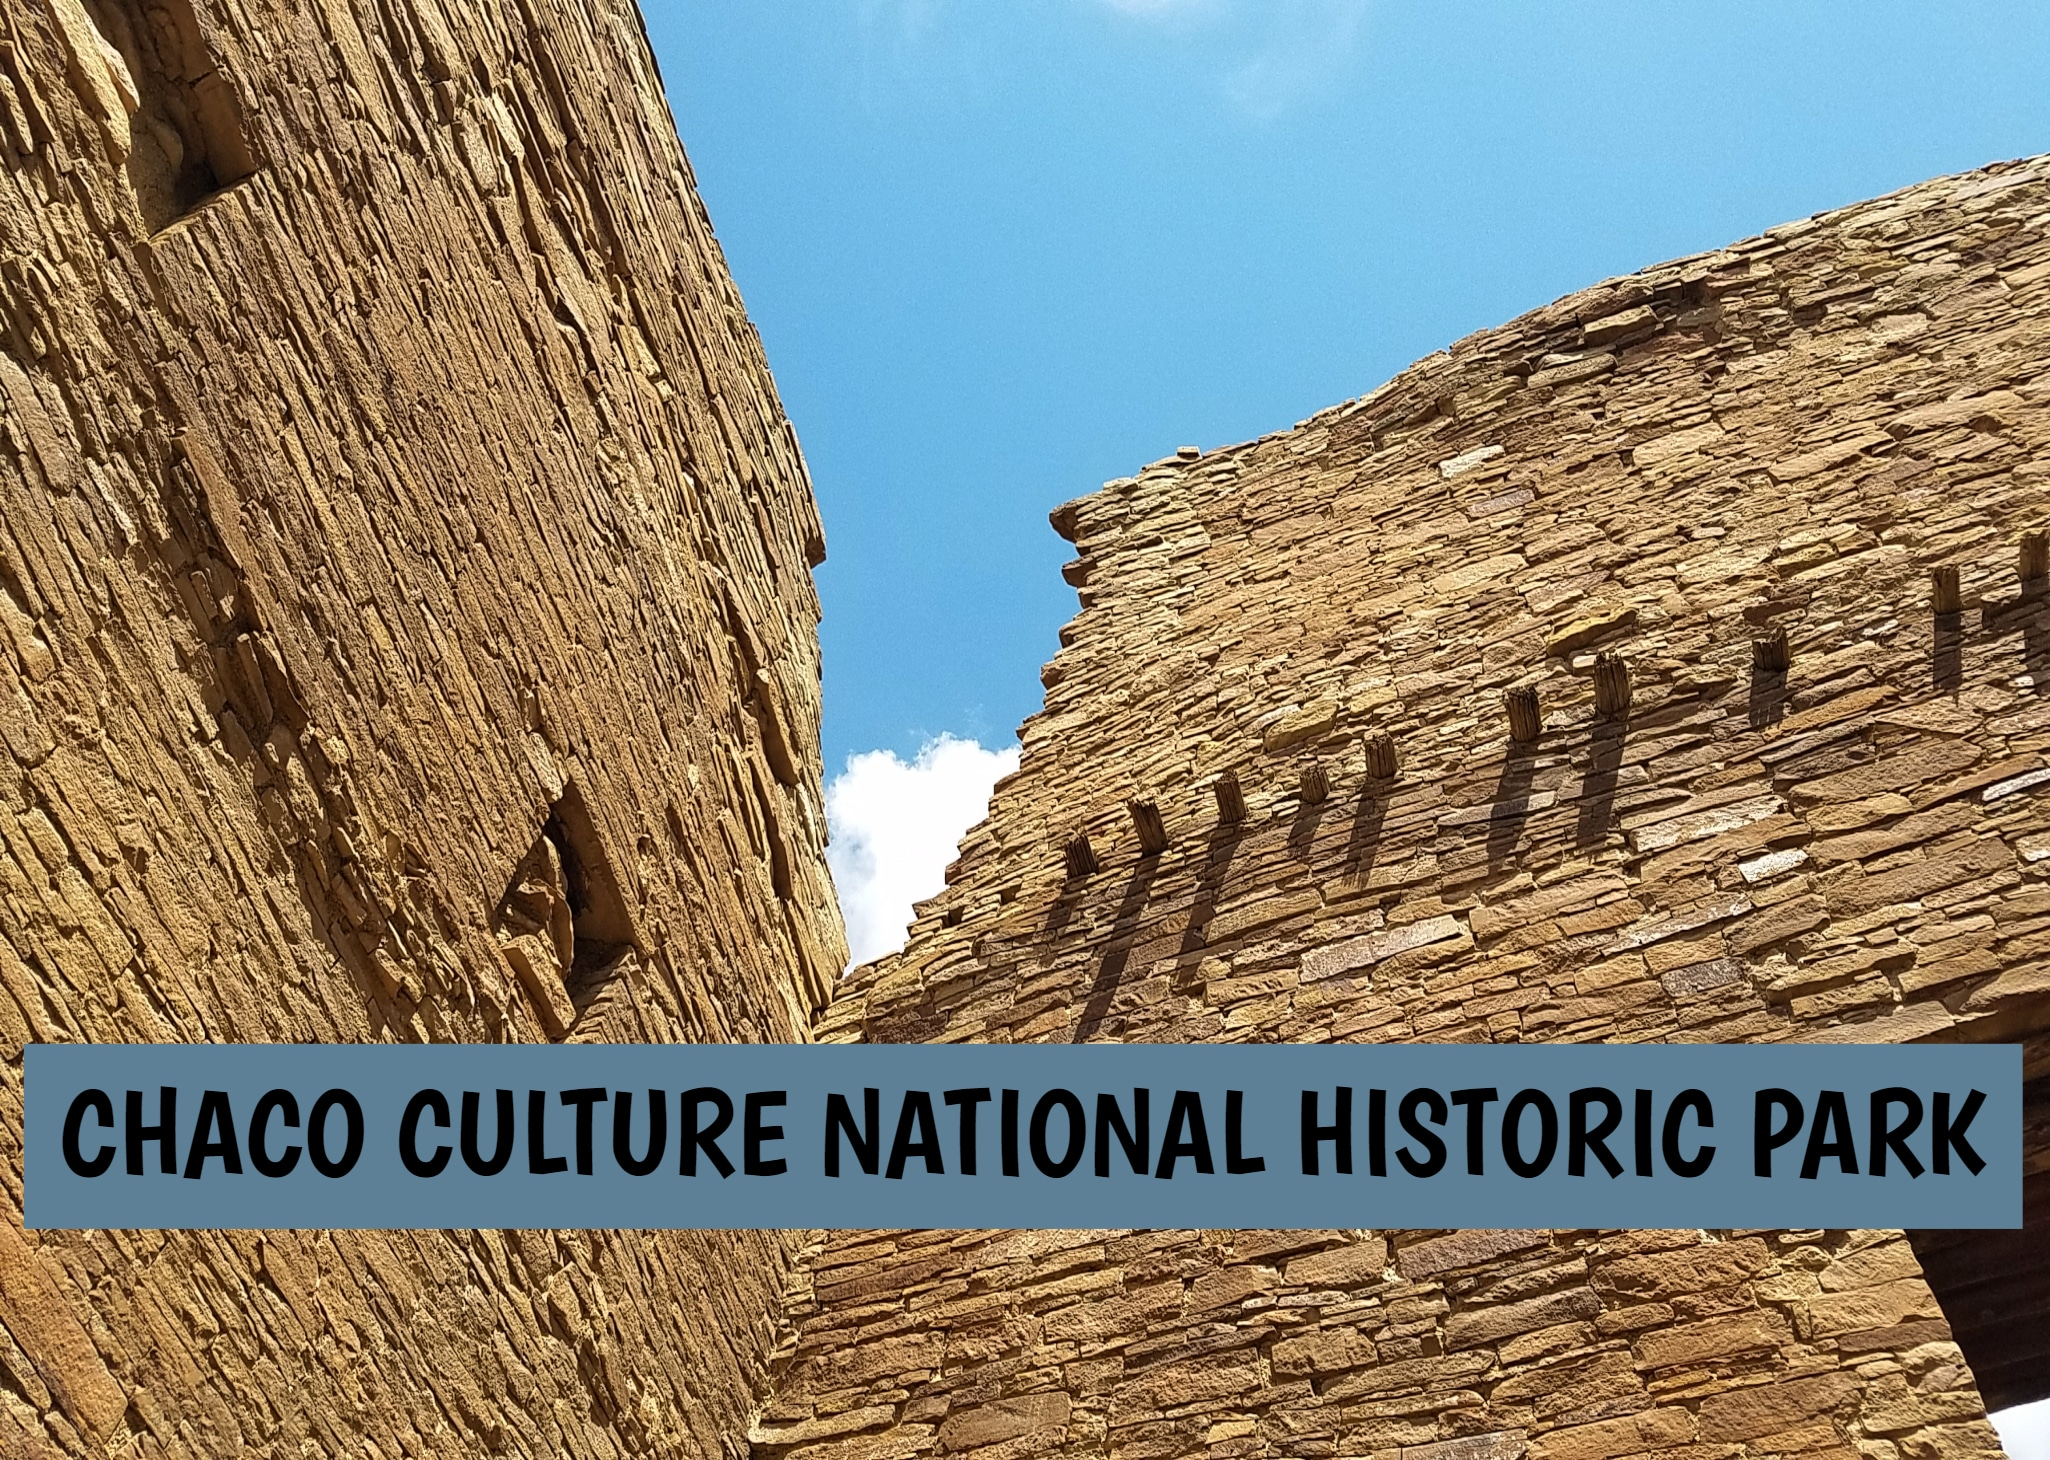 A Fun Find In New Mexico: Chaco Culture National Historic Park